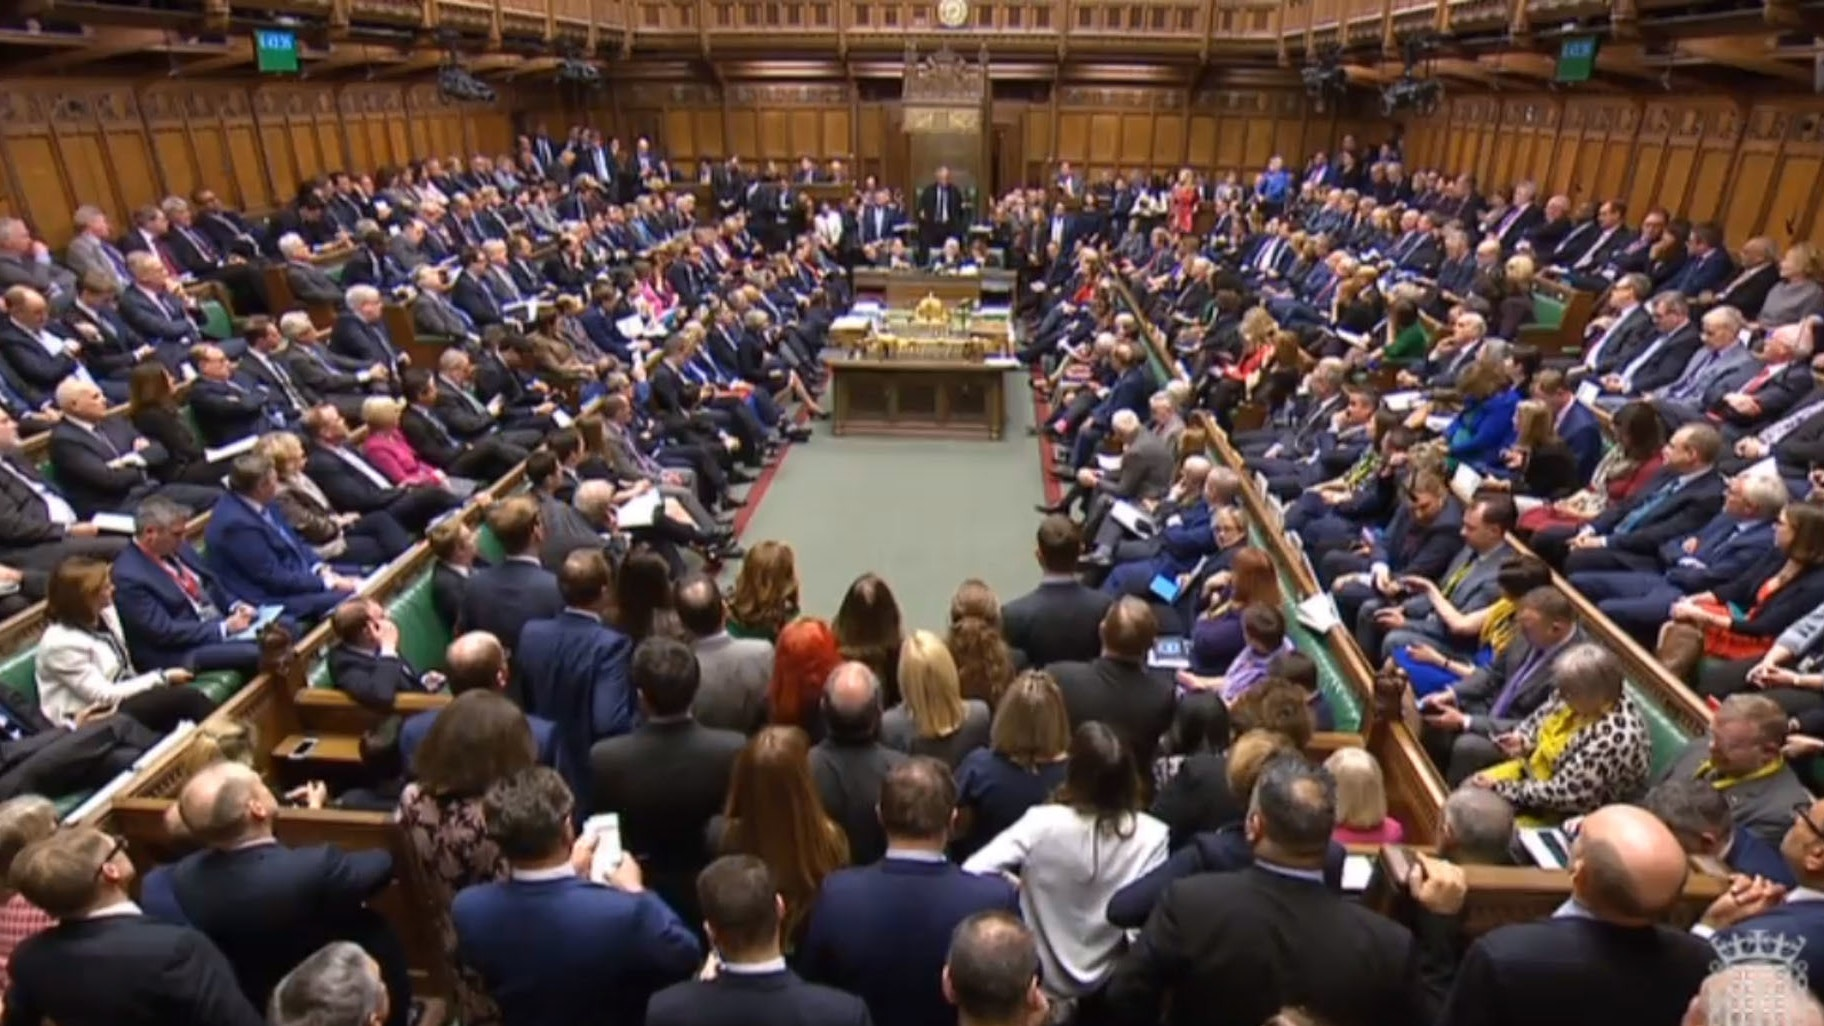 Rundle: Theresa May defeated on crucial Brexit vote